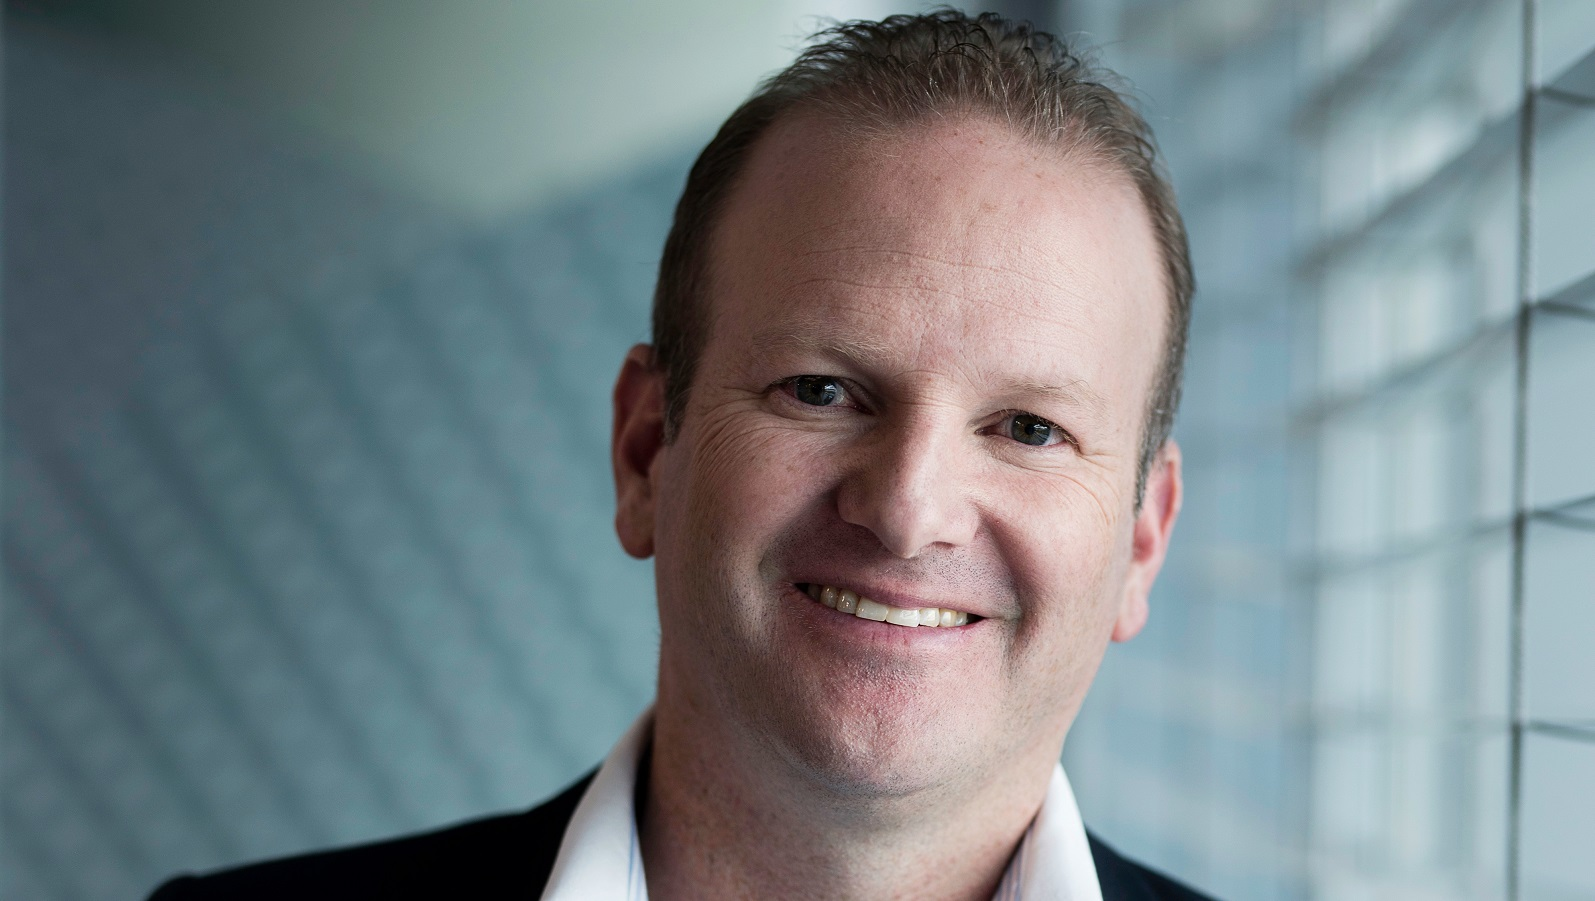 Discovery Insure working with local IoT company to boost vehicle insurance product' [Q&A] - Ventureburn